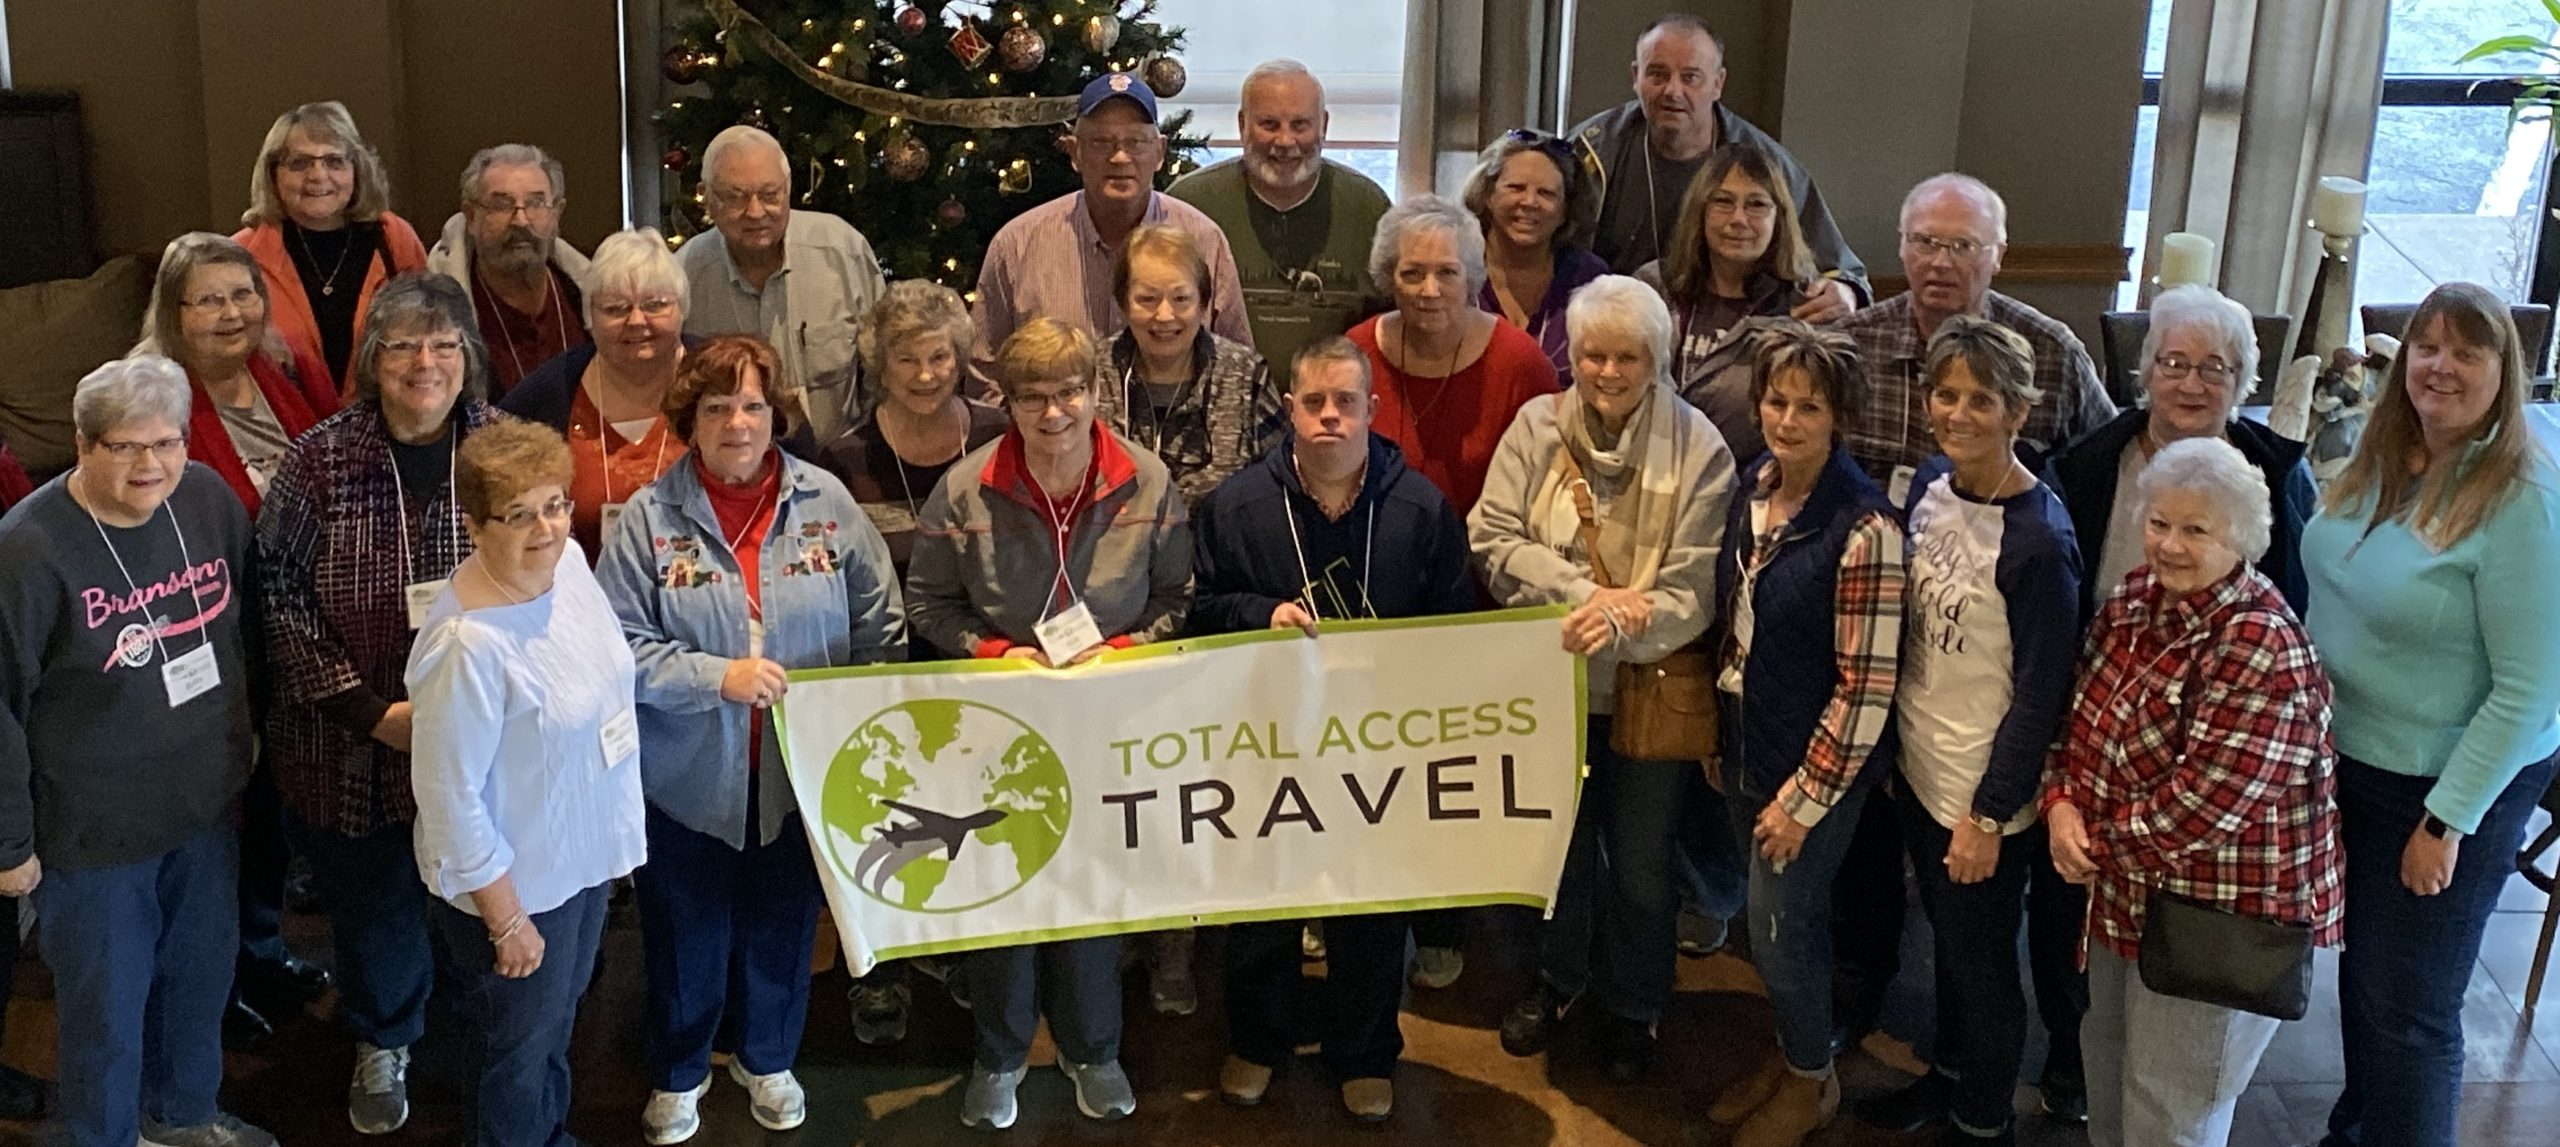 Bus Trip Group for JR Travelers powered by Total Access Travel - Branson 2019